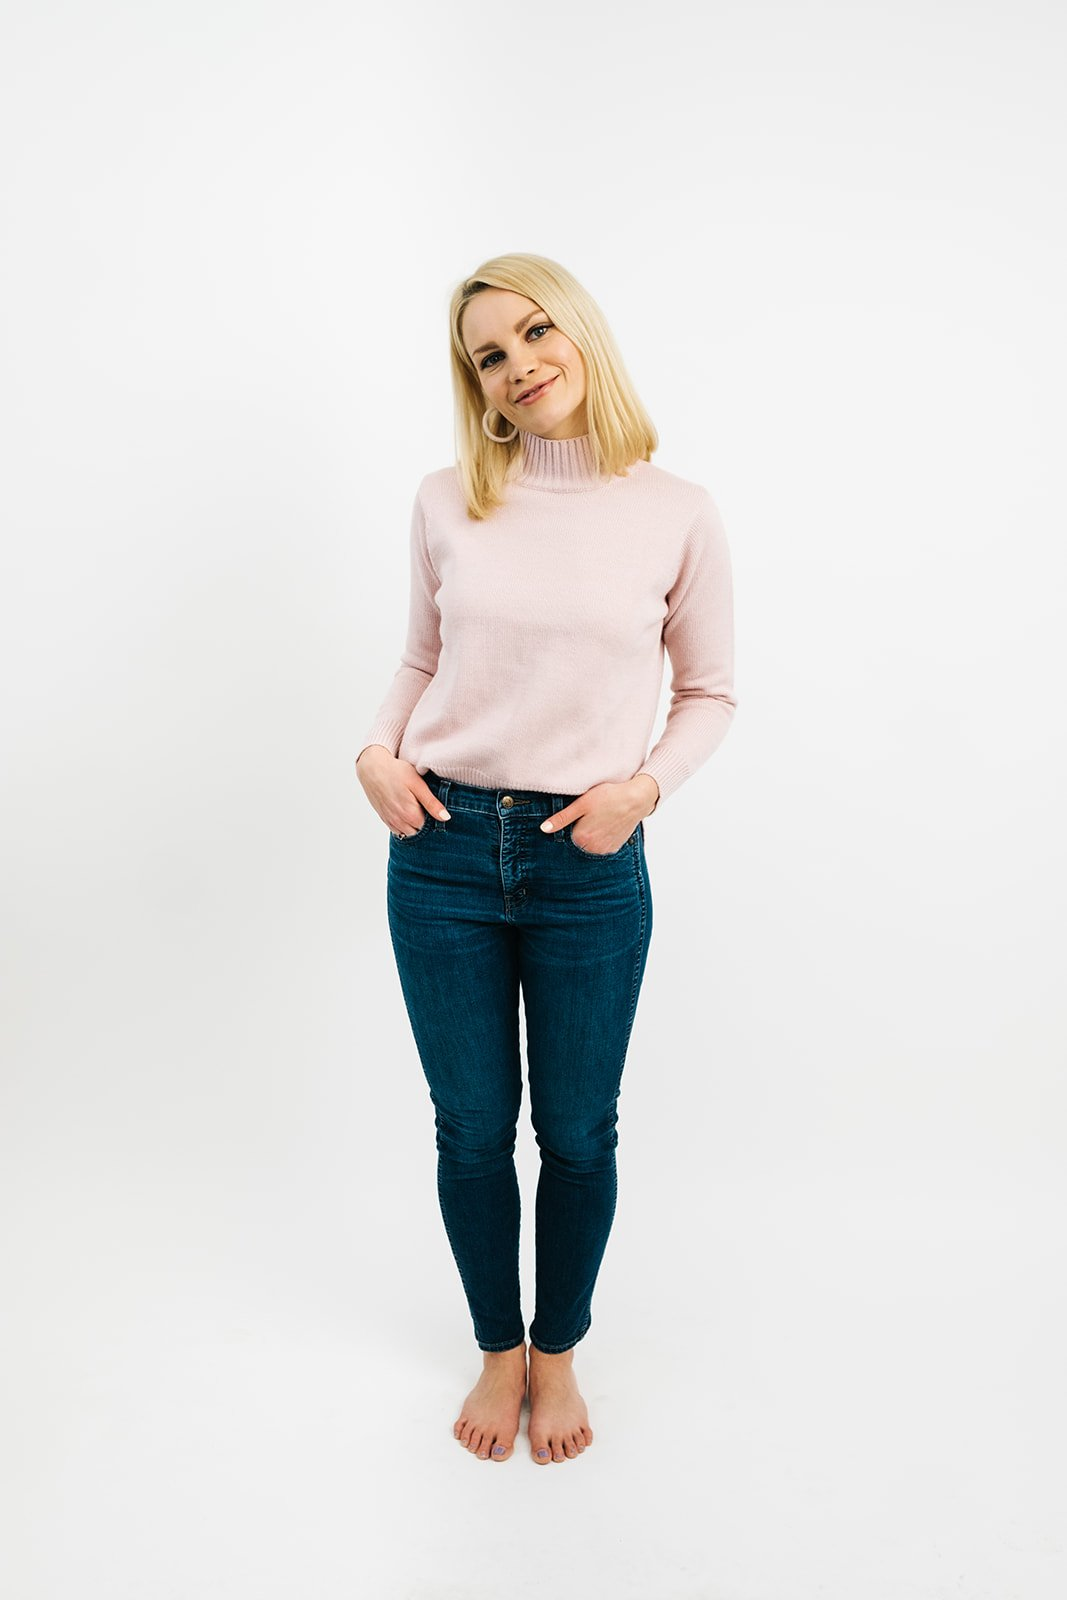 blonde woman in jeans and a light pink turtleneck